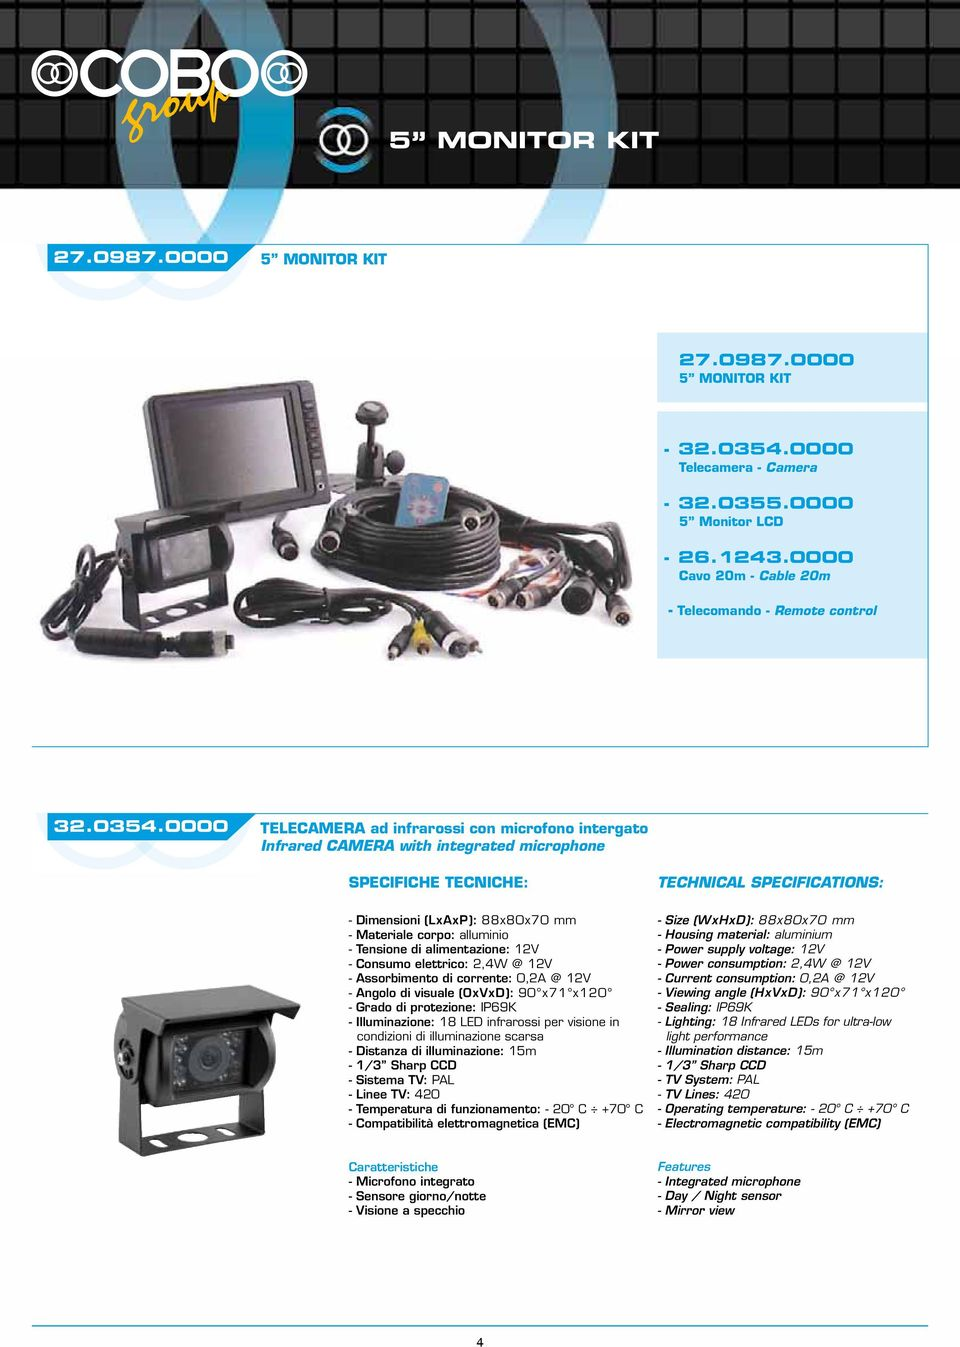 0000 TELECAMERA ad infrarossi con microfono intergato Infrared CAMERA with integrated microphone - Dimensioni (LxAxP): 88x80x70 mm - Materiale corpo: alluminio - Tensione di alimentazione: 12V -